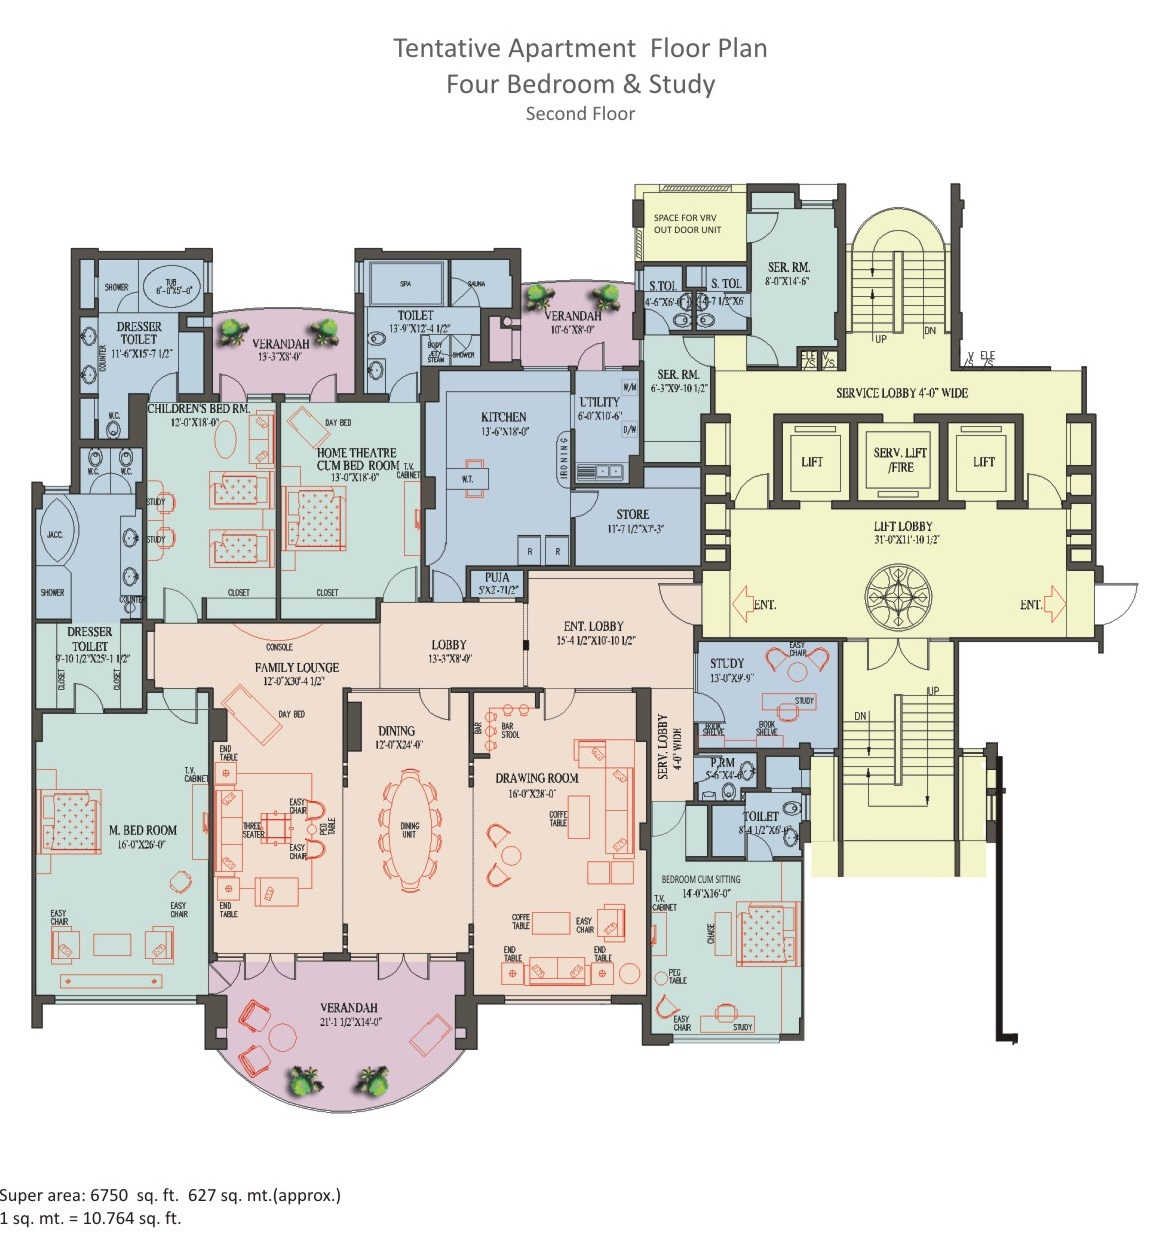 4 BHK Apartment - 2nd Floor